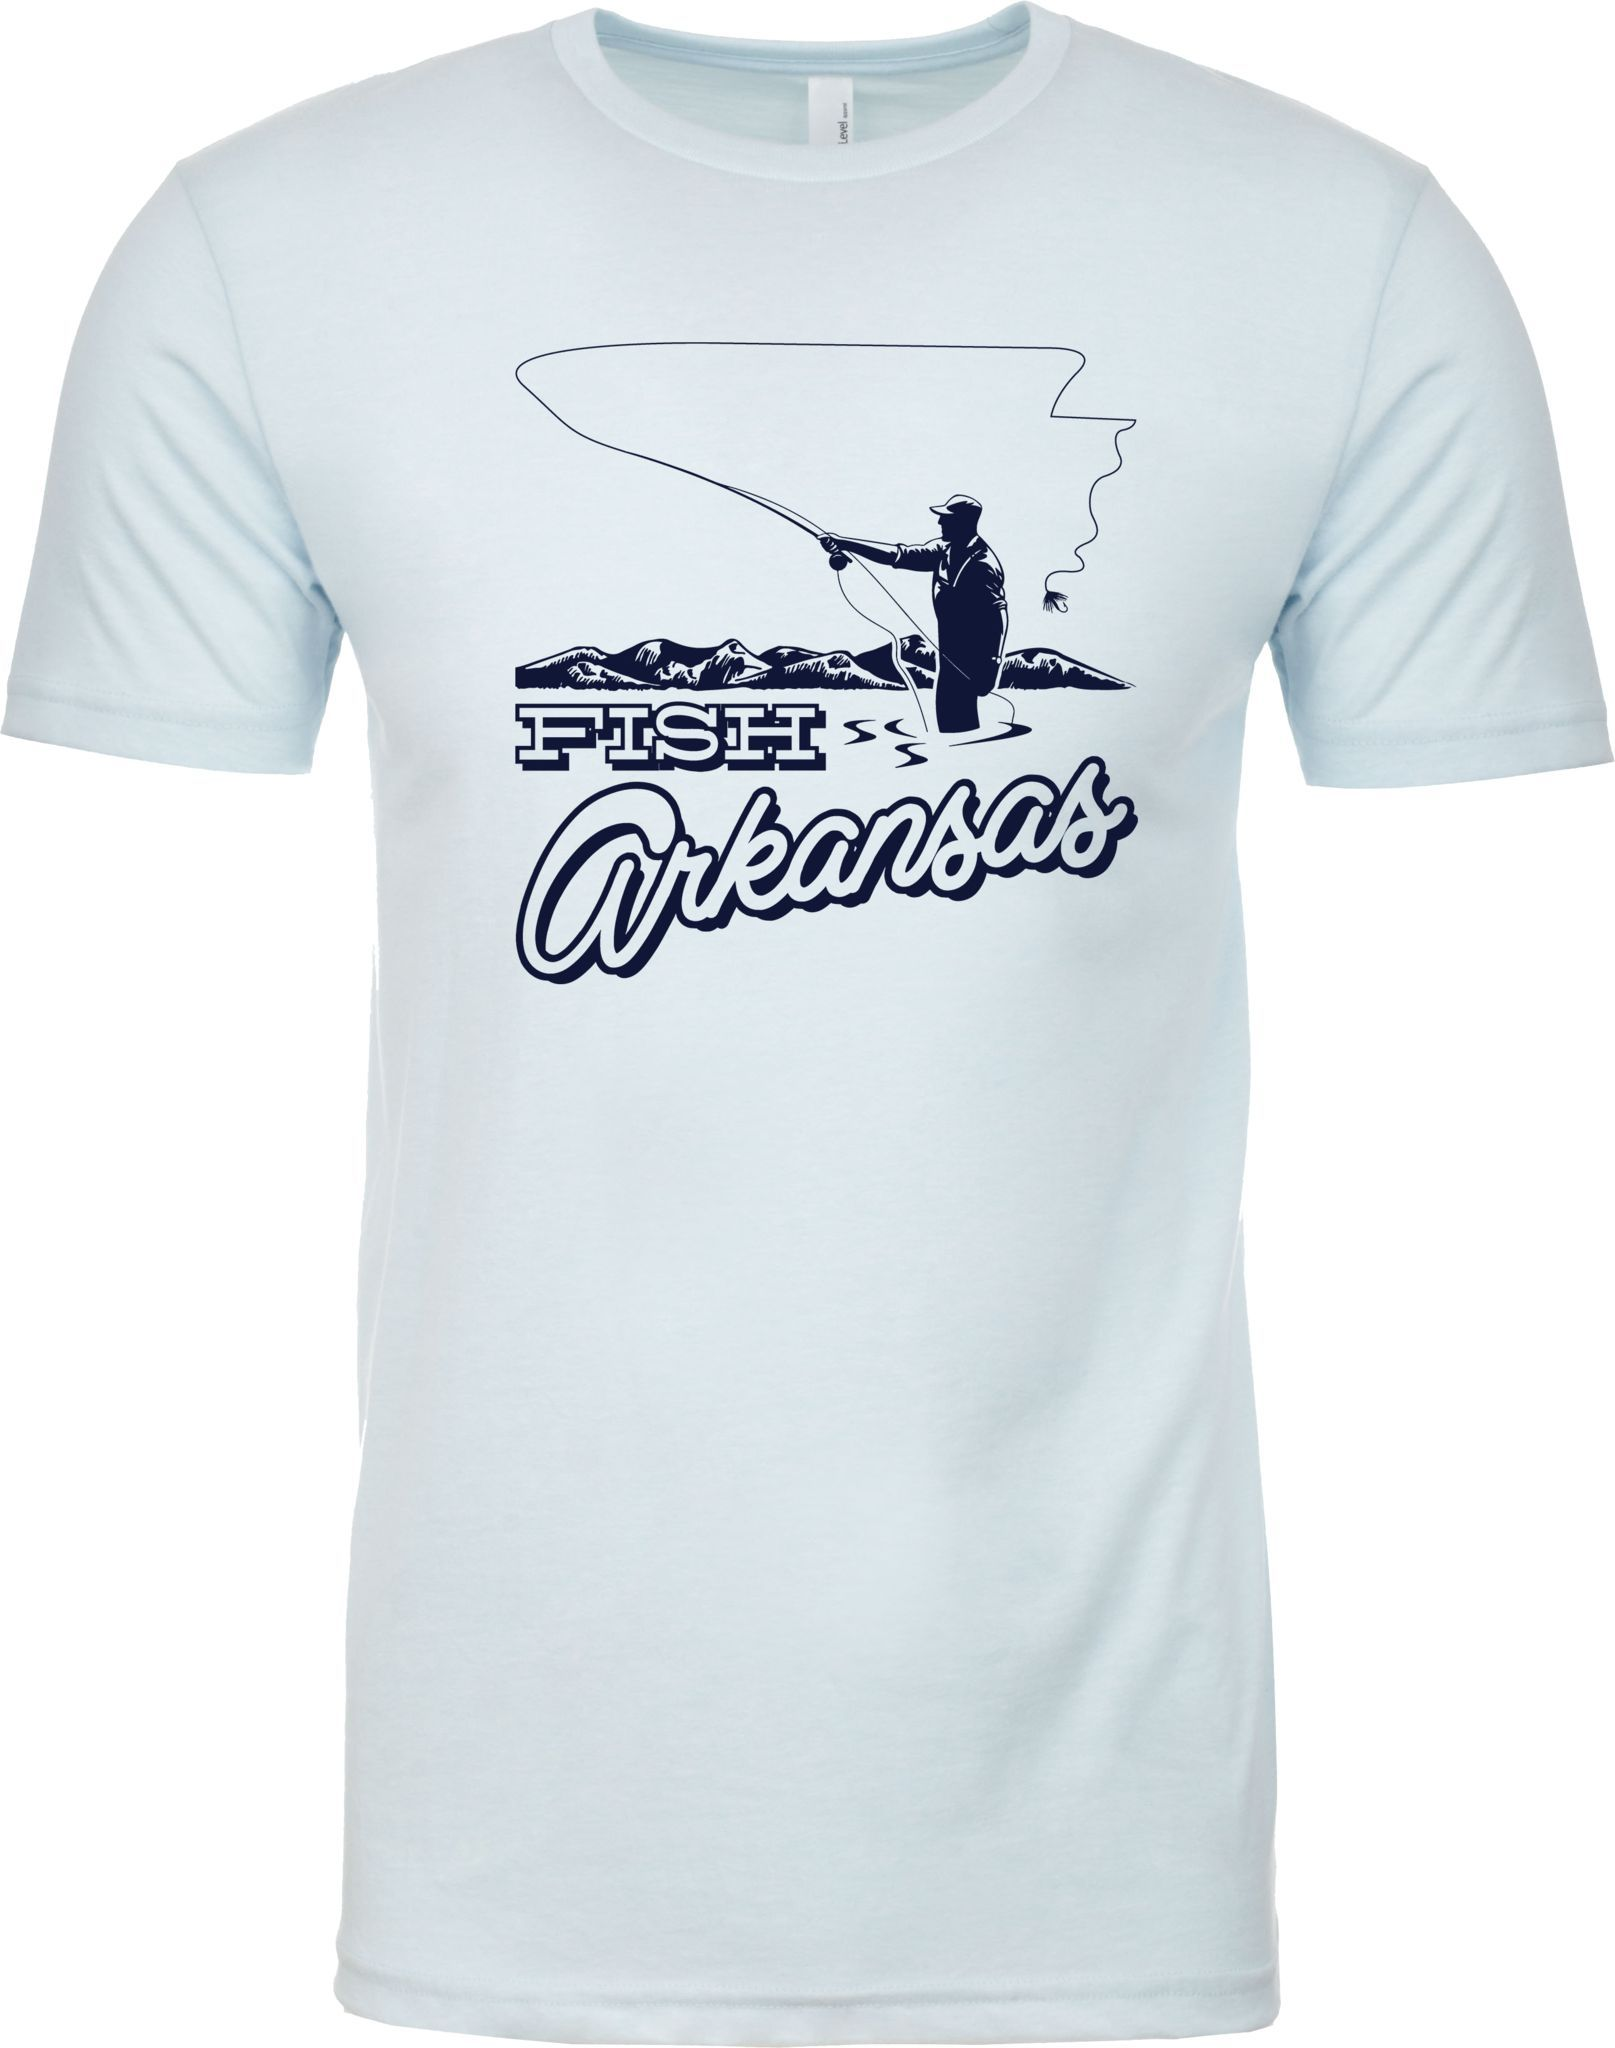 """Fish Arkansas"" Tee"